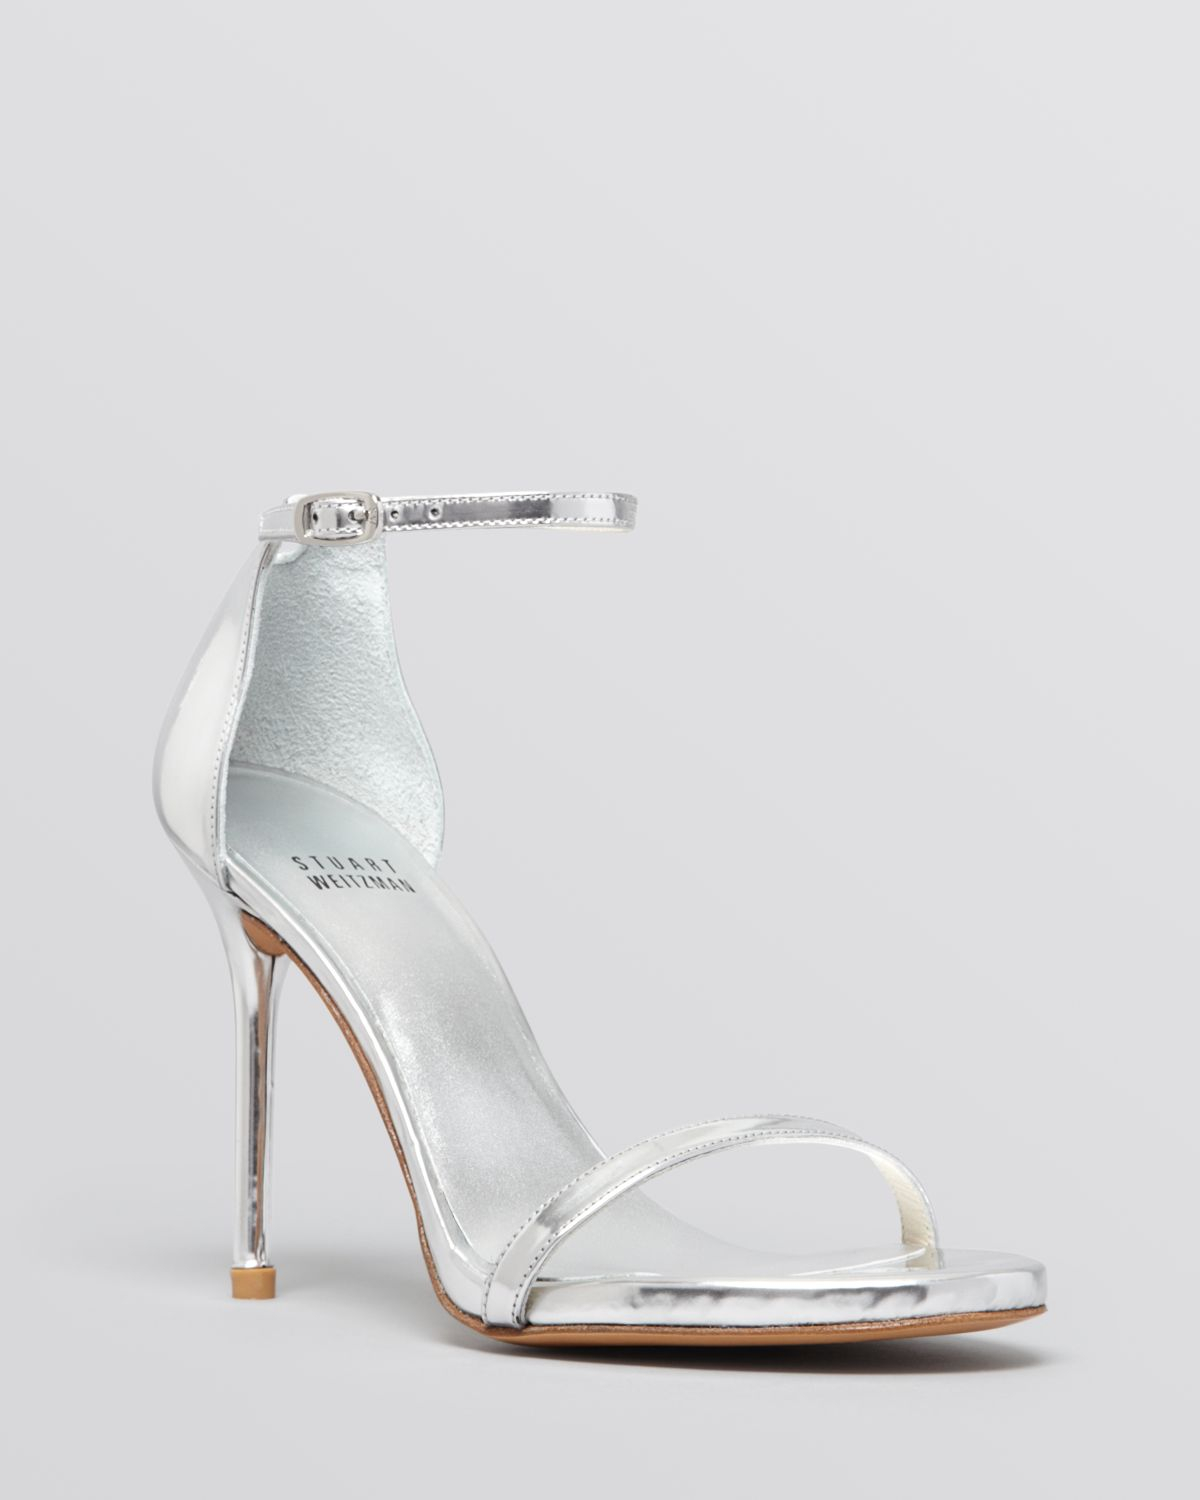 Lyst - Stuart weitzman Ankle Strap Sandals - Nudist High Heel ...